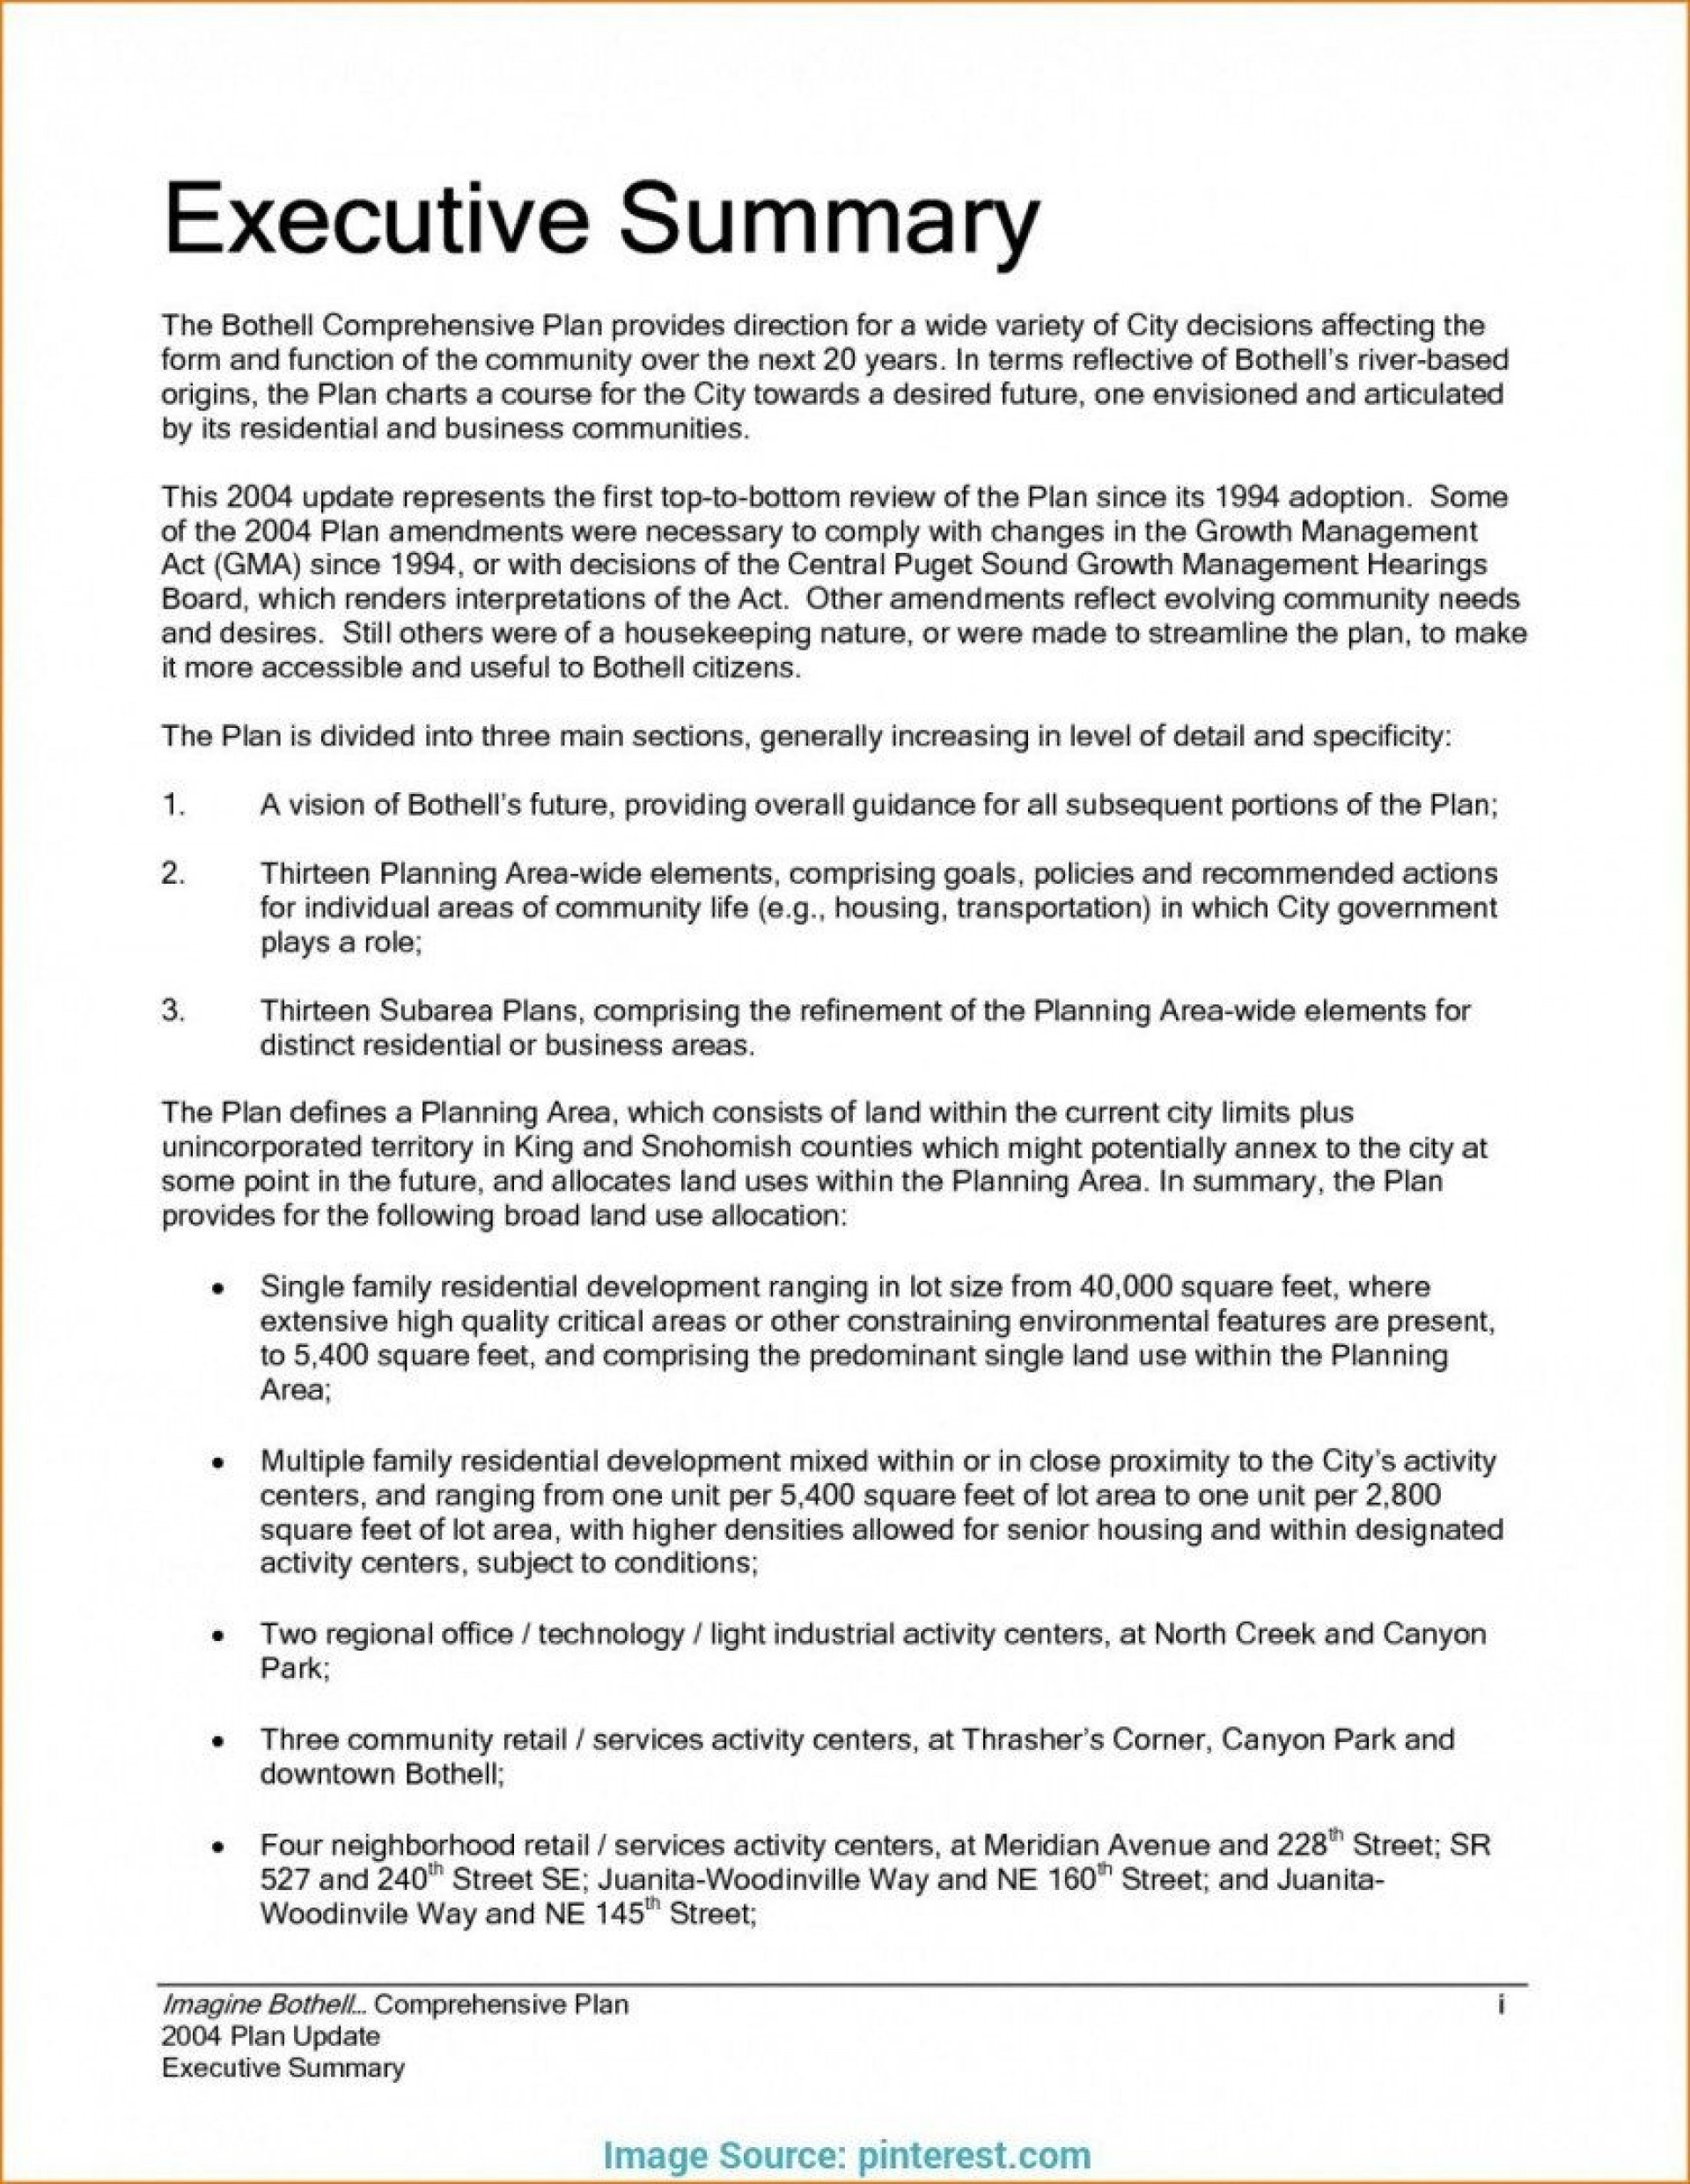 008 Exceptional Executive Summary Template Word Free Highest Quality 1920